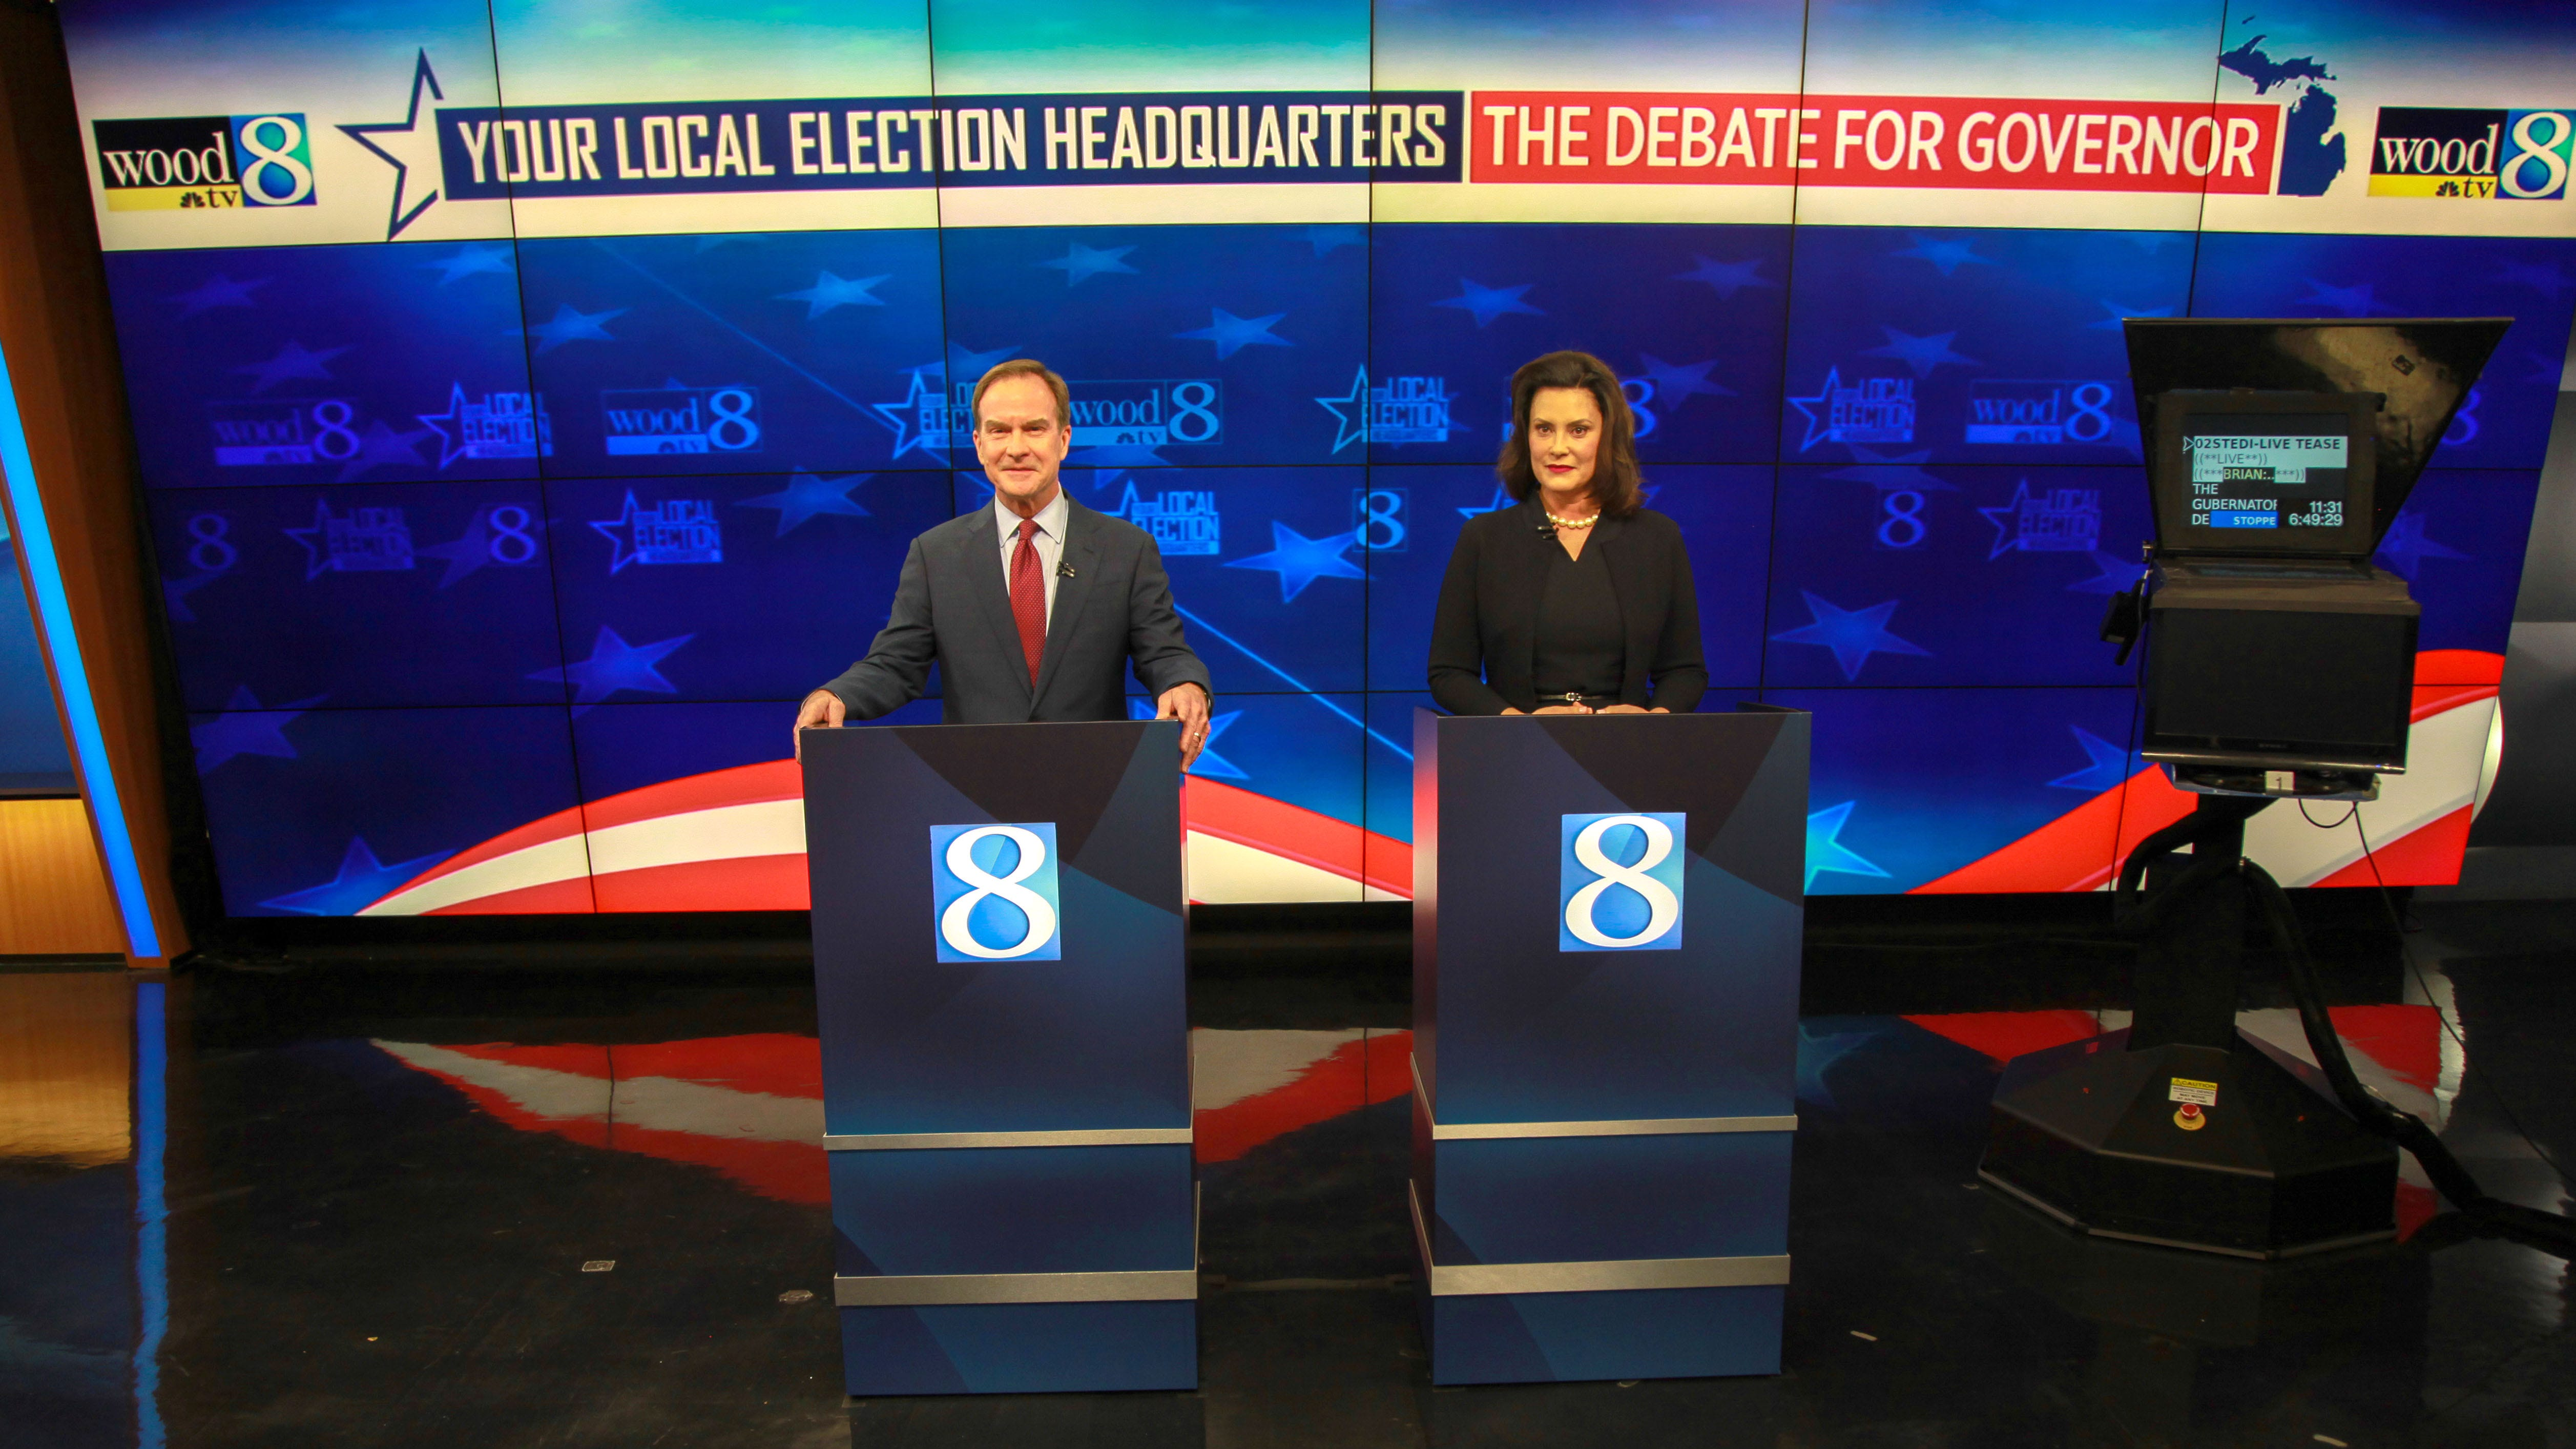 Whitmer and Schuette trade blows in bare-knuckle Grand Rapids debate